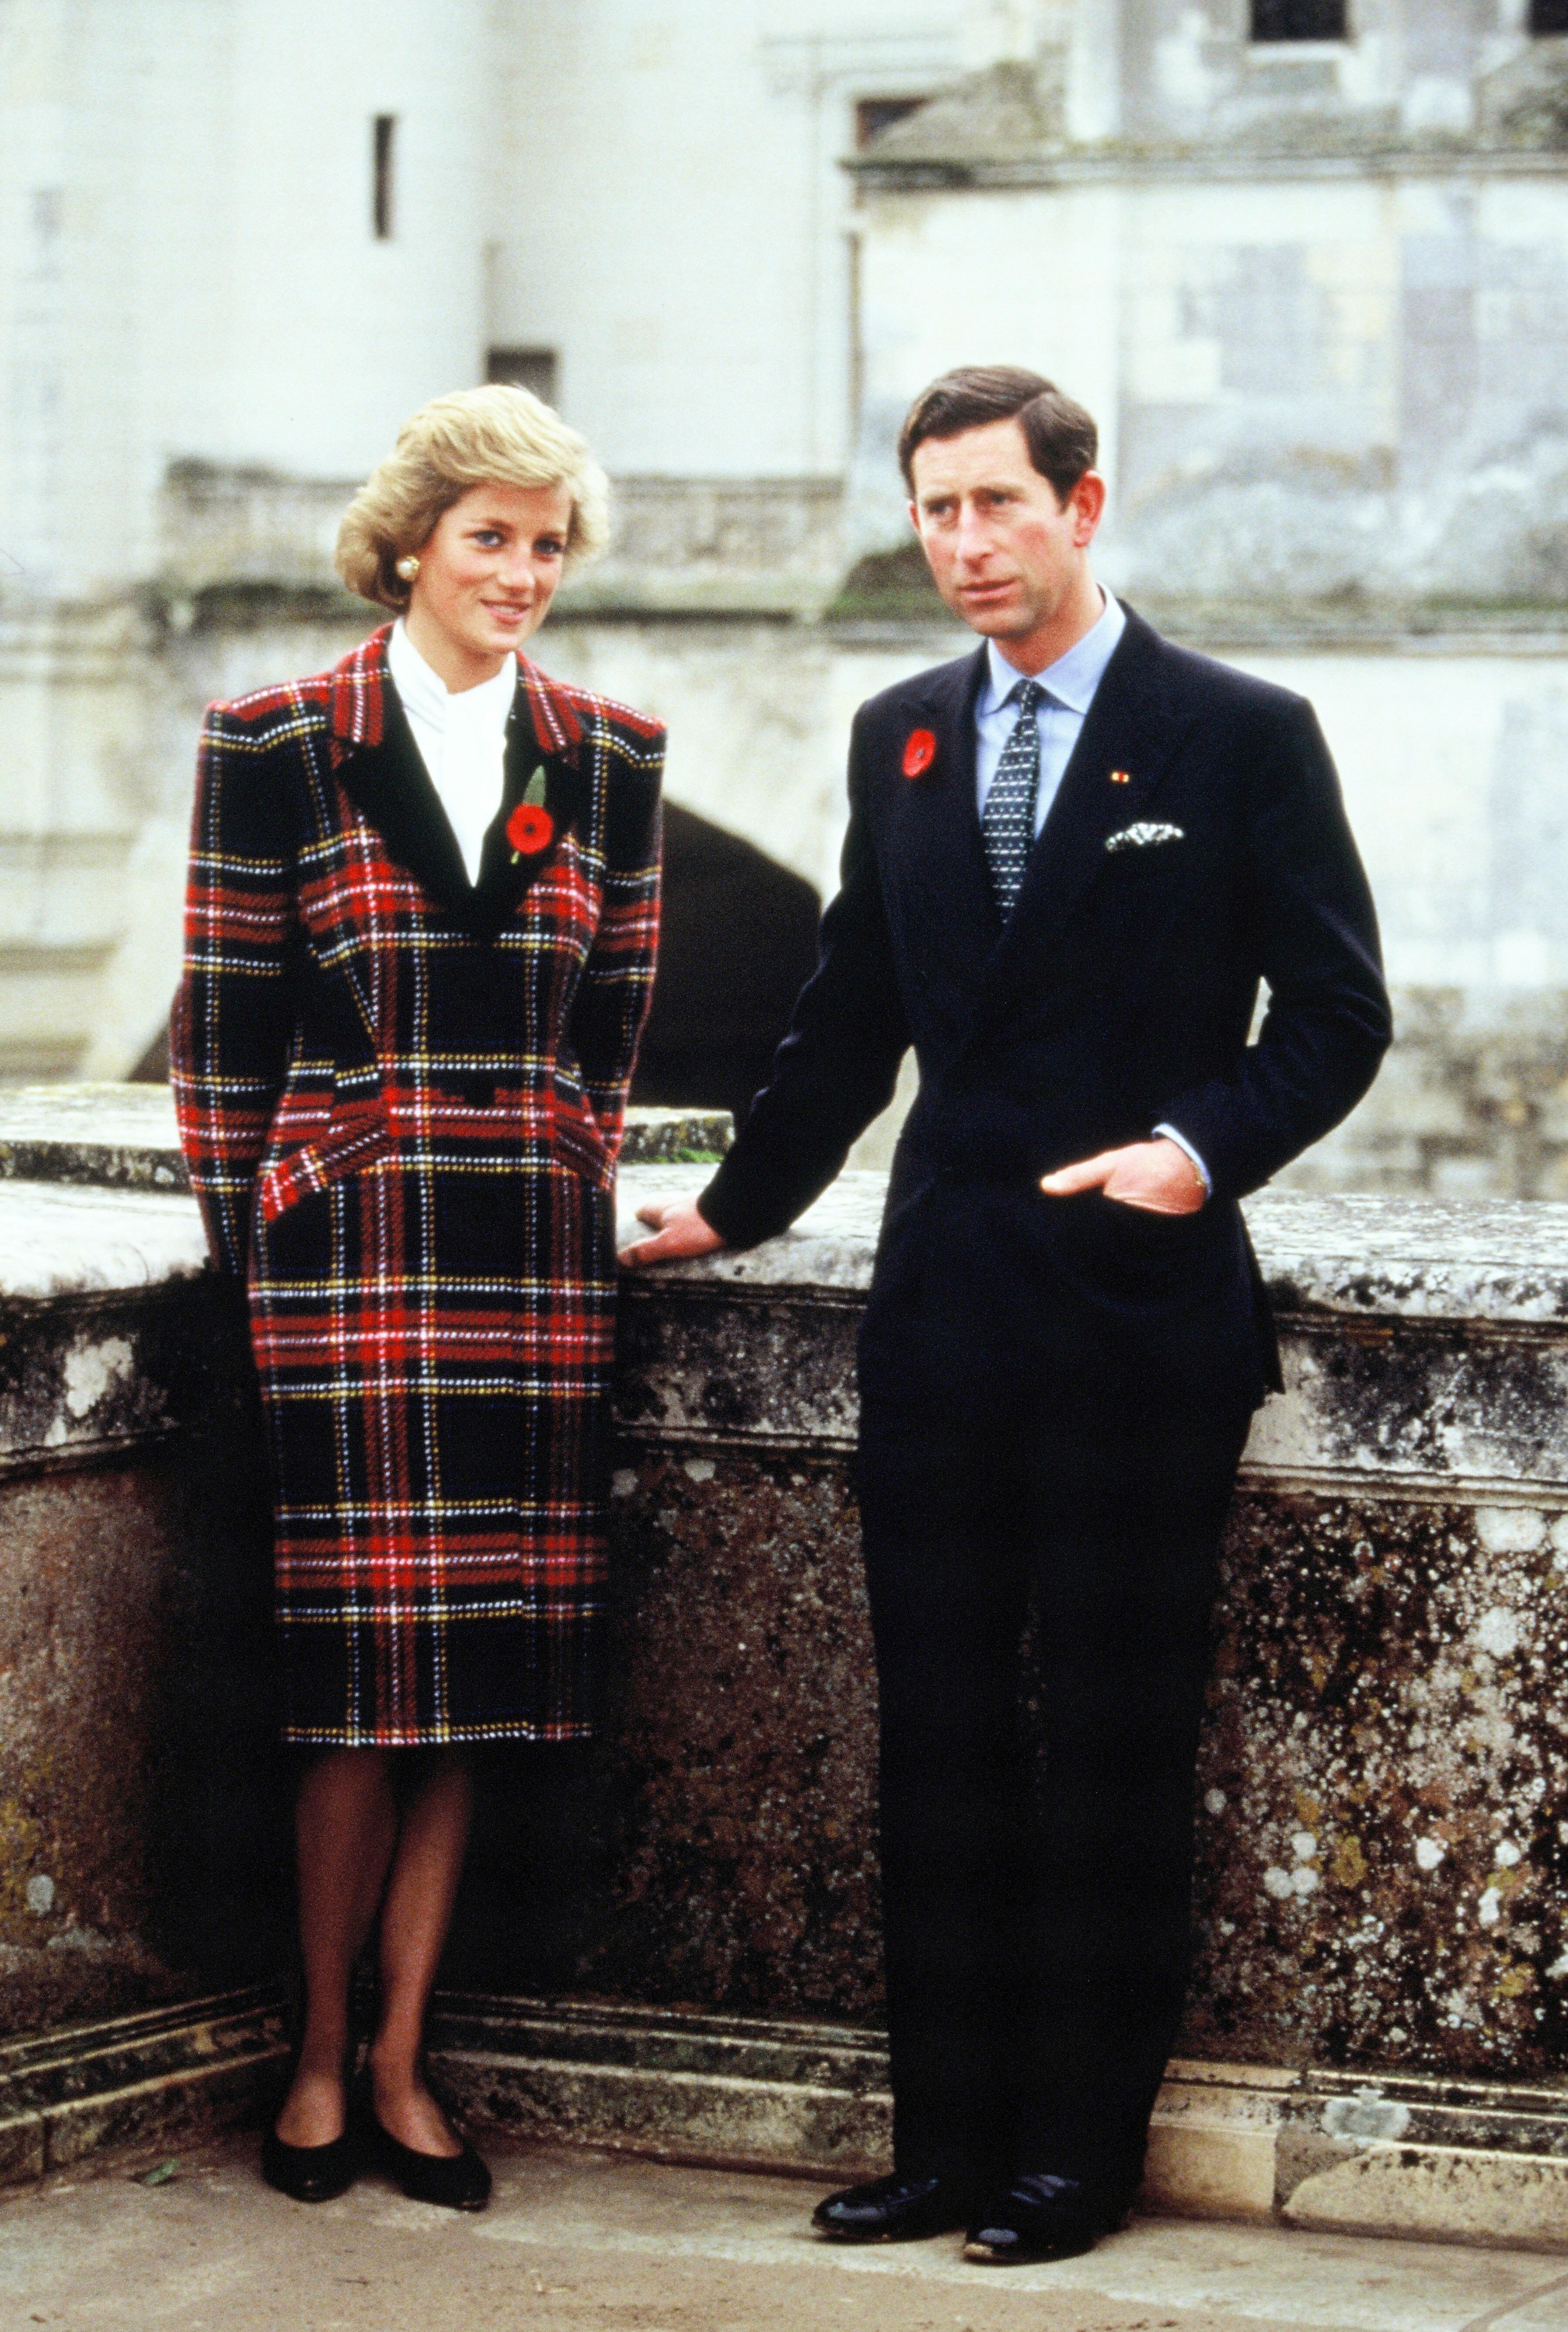 Prince Charles and Princess Diana Chateau de Chambord on November 9, 1988, in Chambord, France | Photo: Georges De Keerle/Getty Images